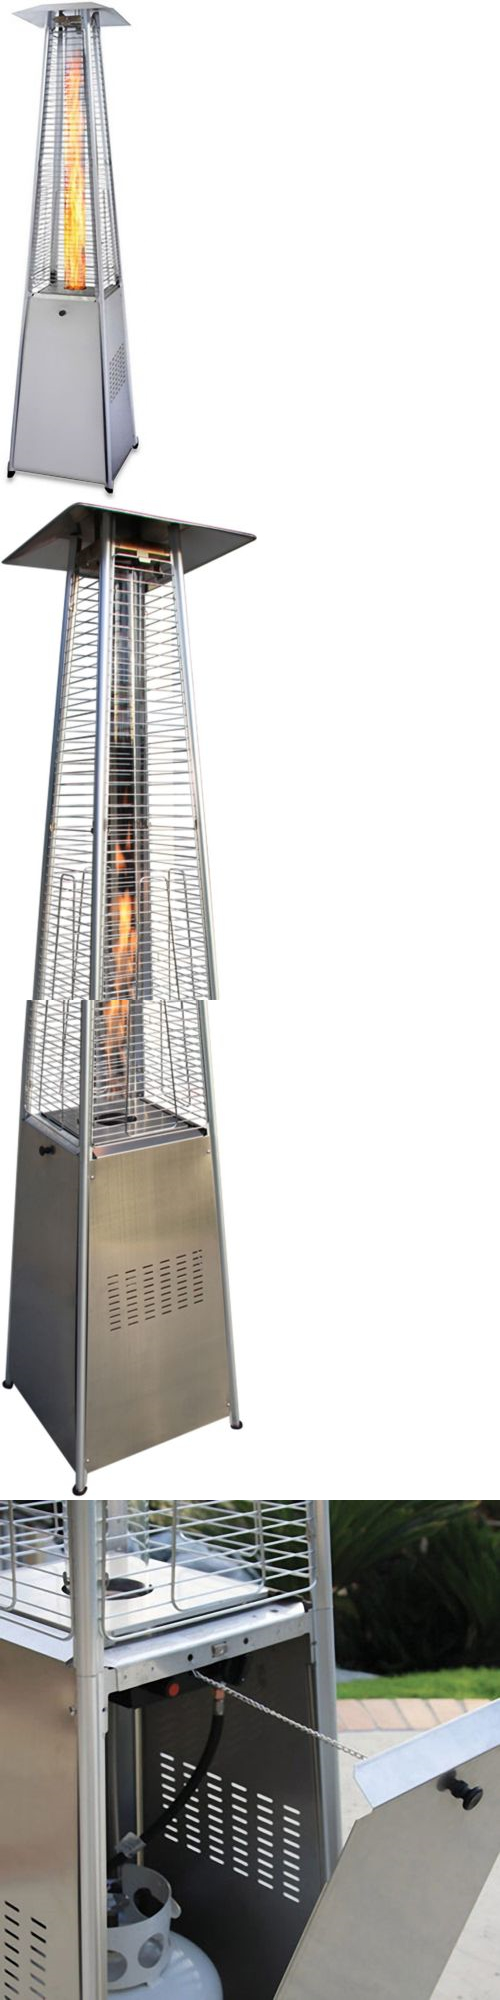 Patio heaters garden radiance grpss dancing flames